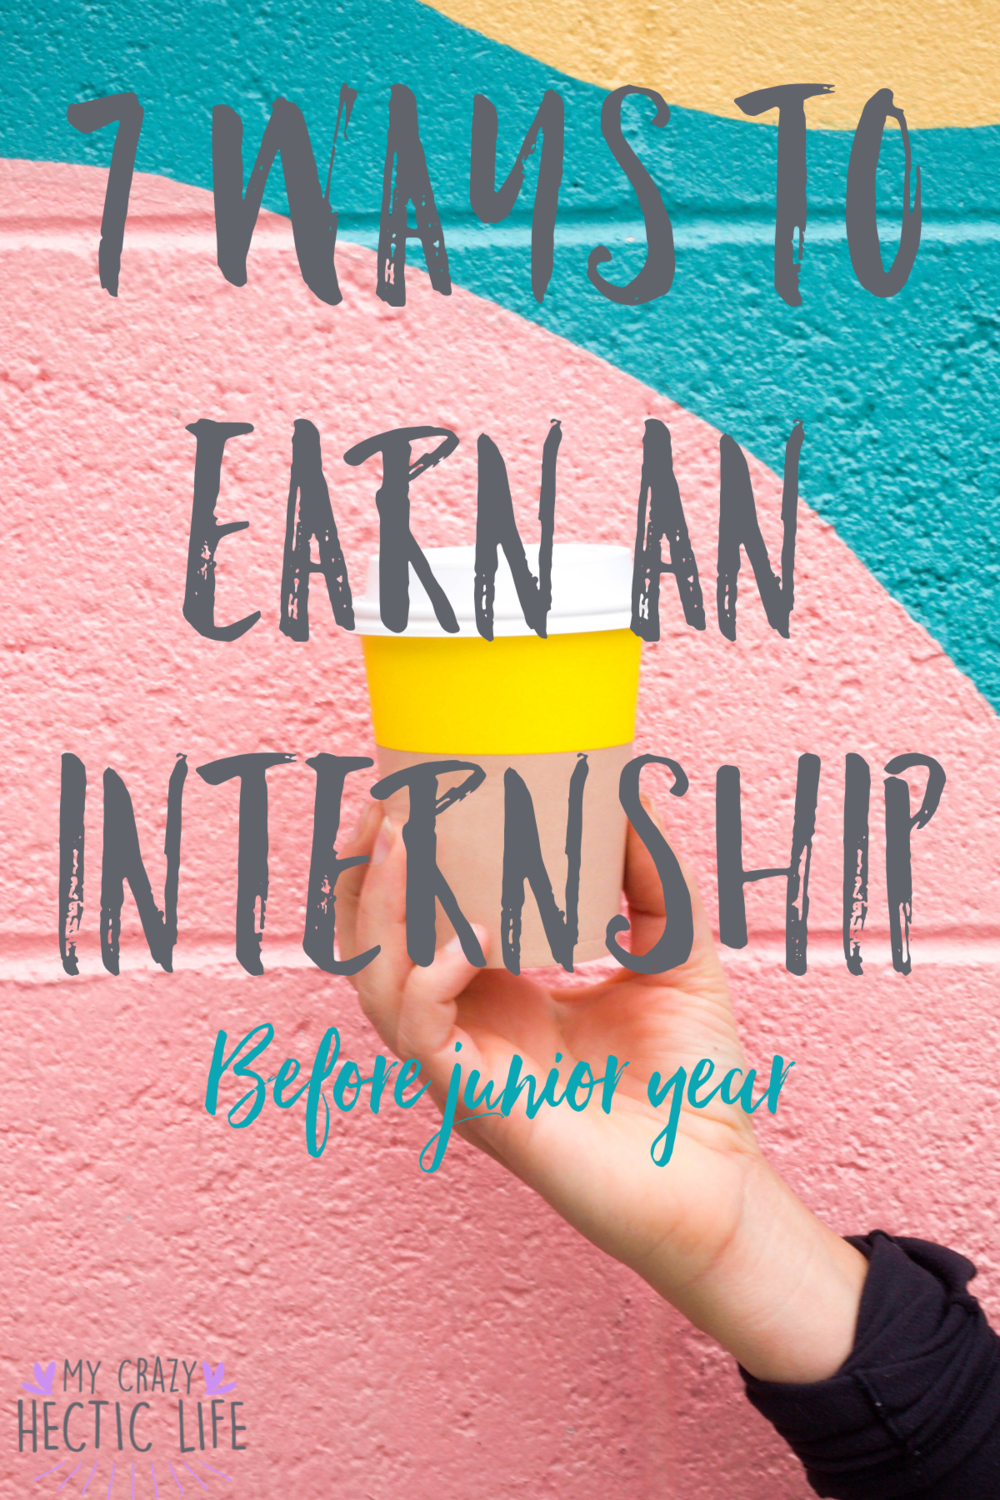 7 Ways to Land an Internship before junior year